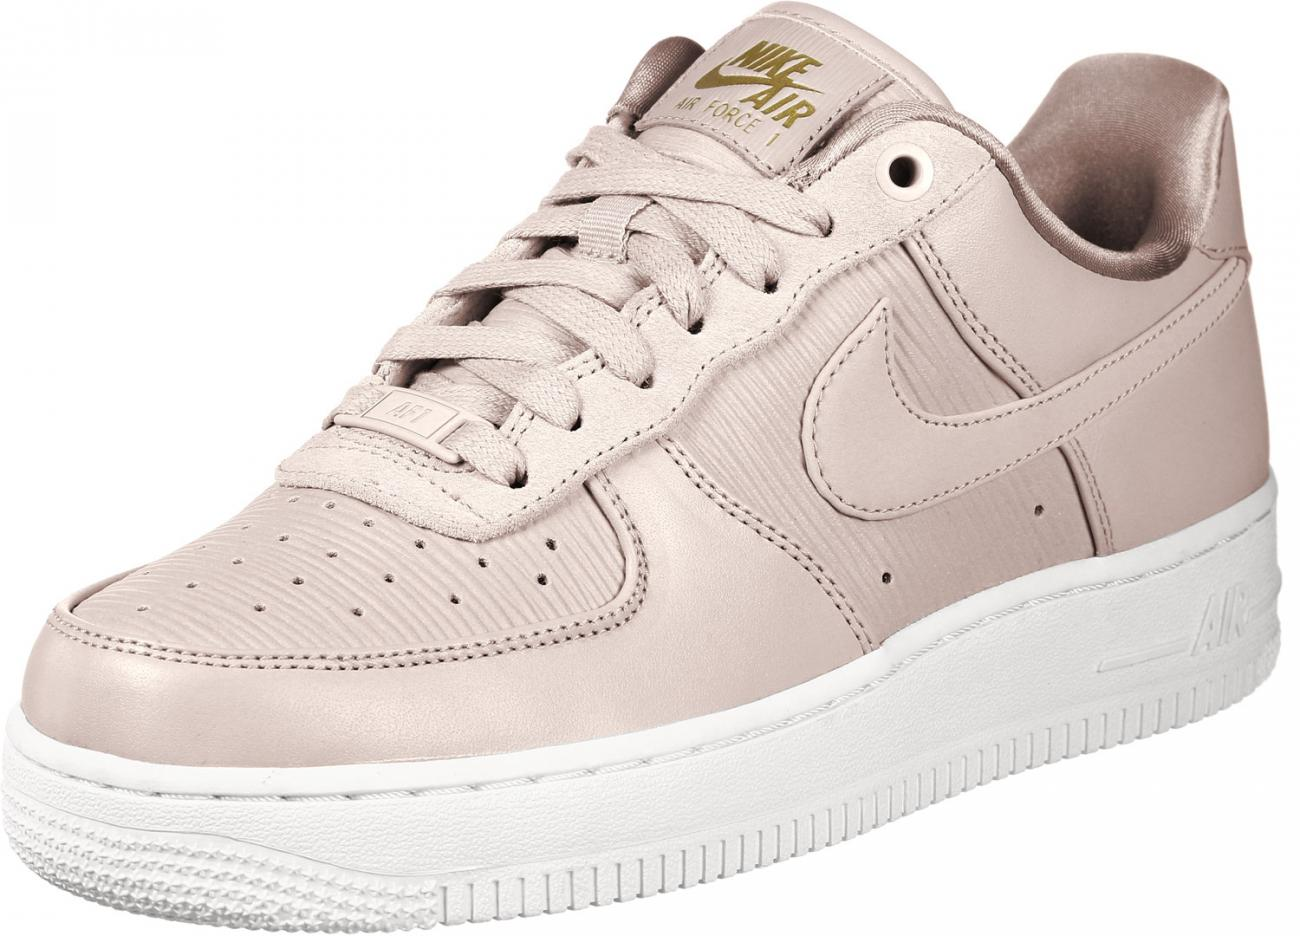 aire force femme,Collection Nike air force 1